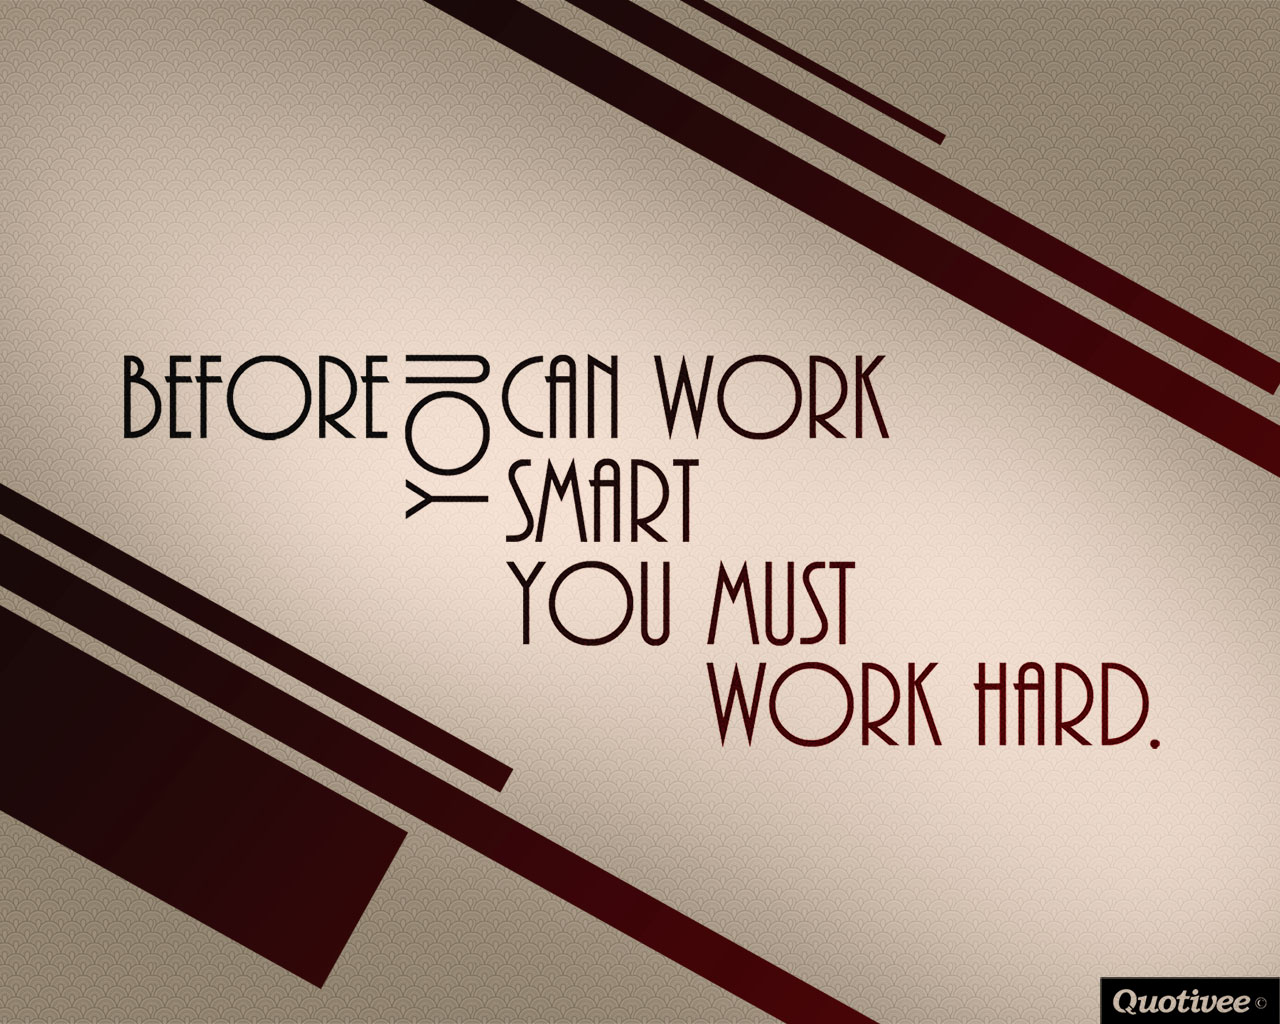 Motivational Quotes Wallpaper For Mobile Before You Can Work Smart Inspirational Quotes Quotivee